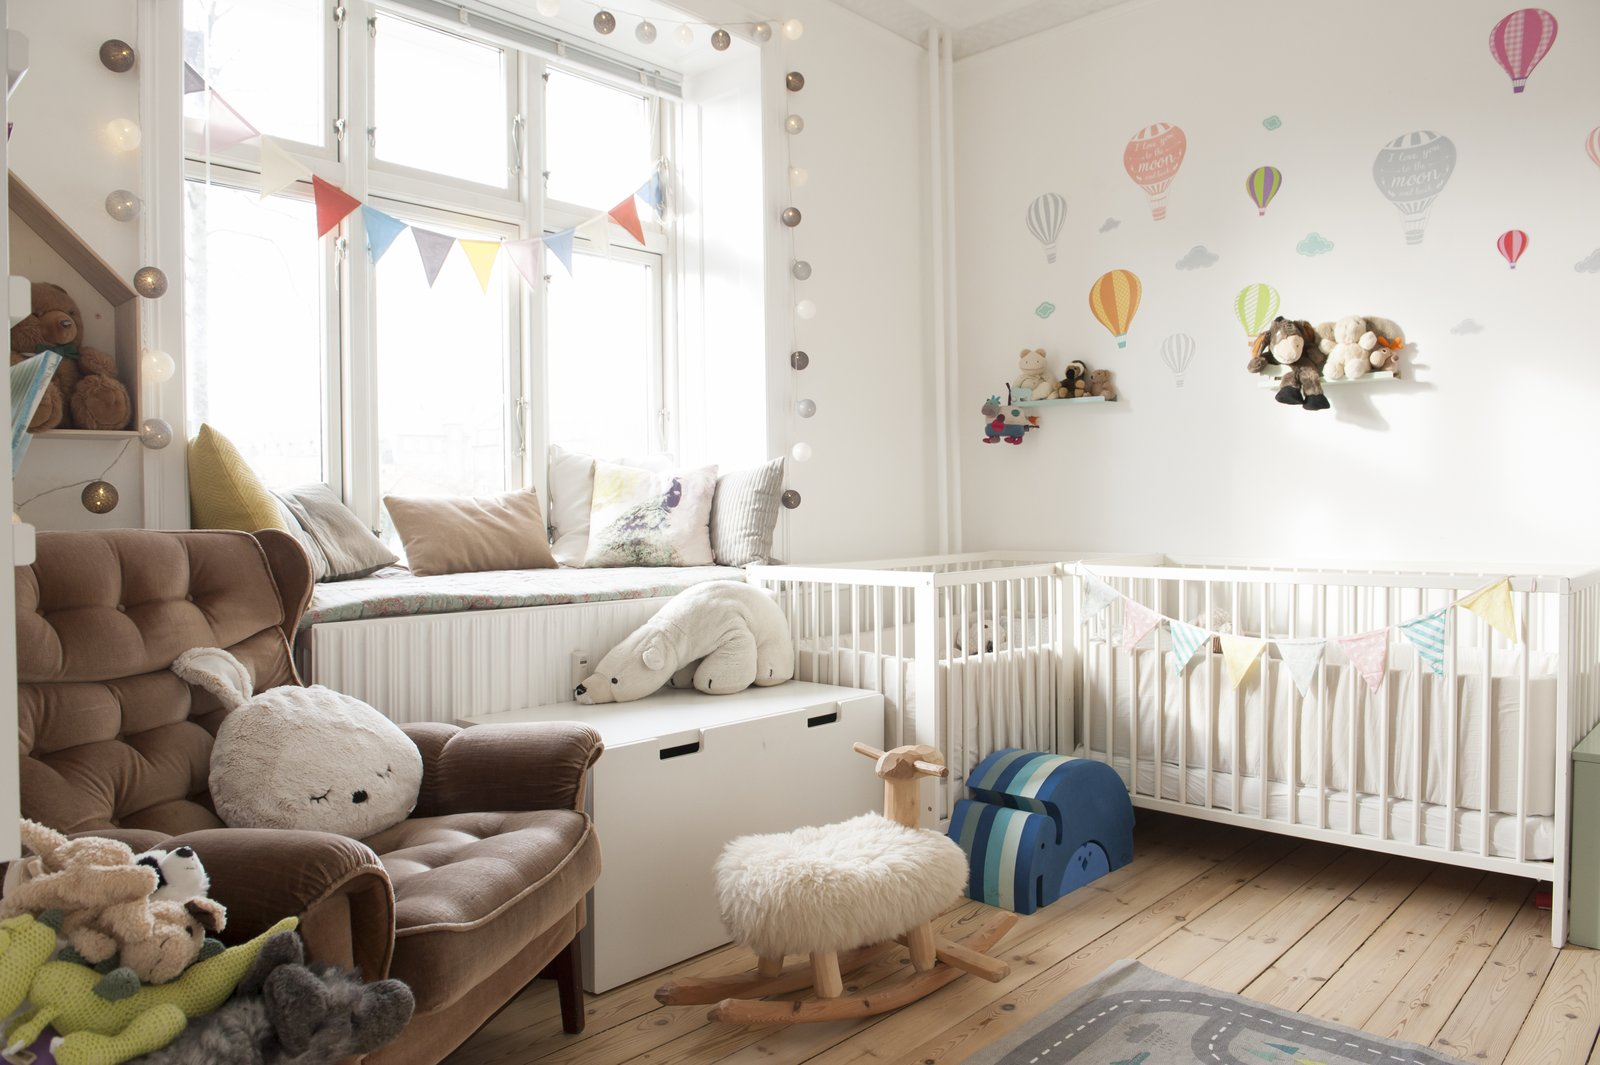 Kids Room, Bedroom Room Type, Bed, Bench, Chair, and Toddler Age children's nursery filled with plush toys, hot air balloon decor, and light strings  Pretty and Sweet Family Flat by Petra Ford